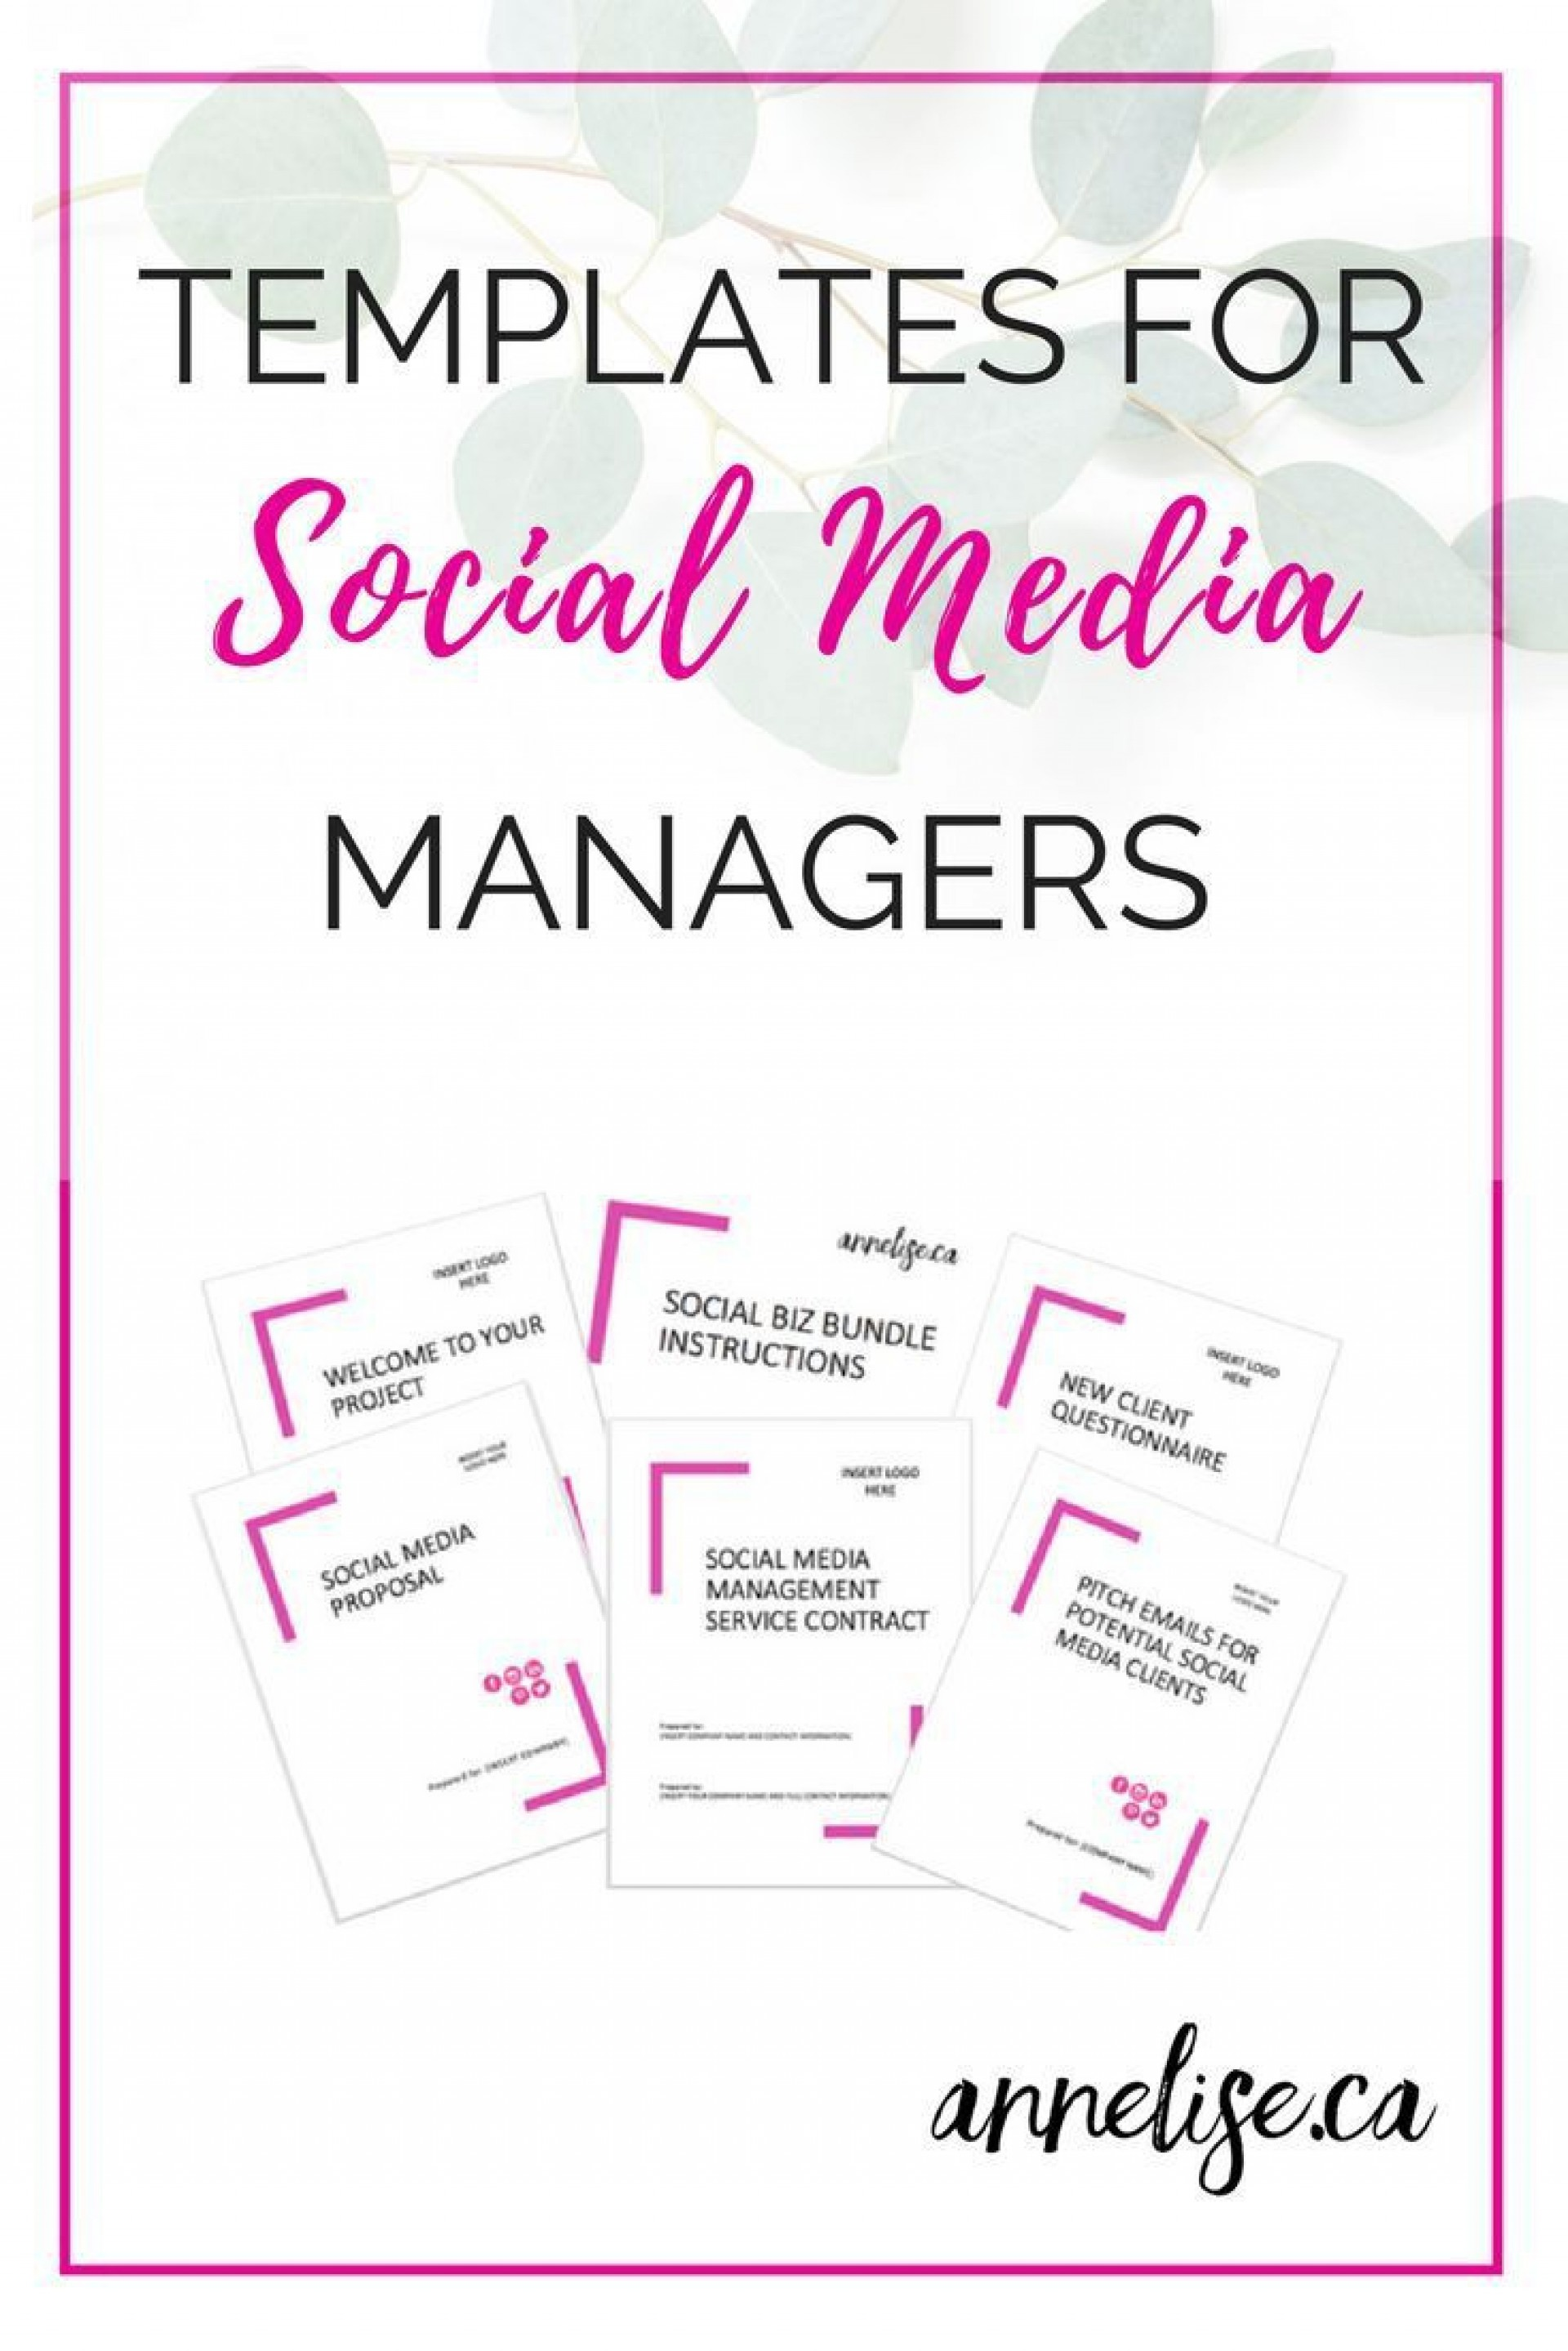 003 Awesome Social Media Proposal Template High Resolution  Plan Sample Pdf 20181920